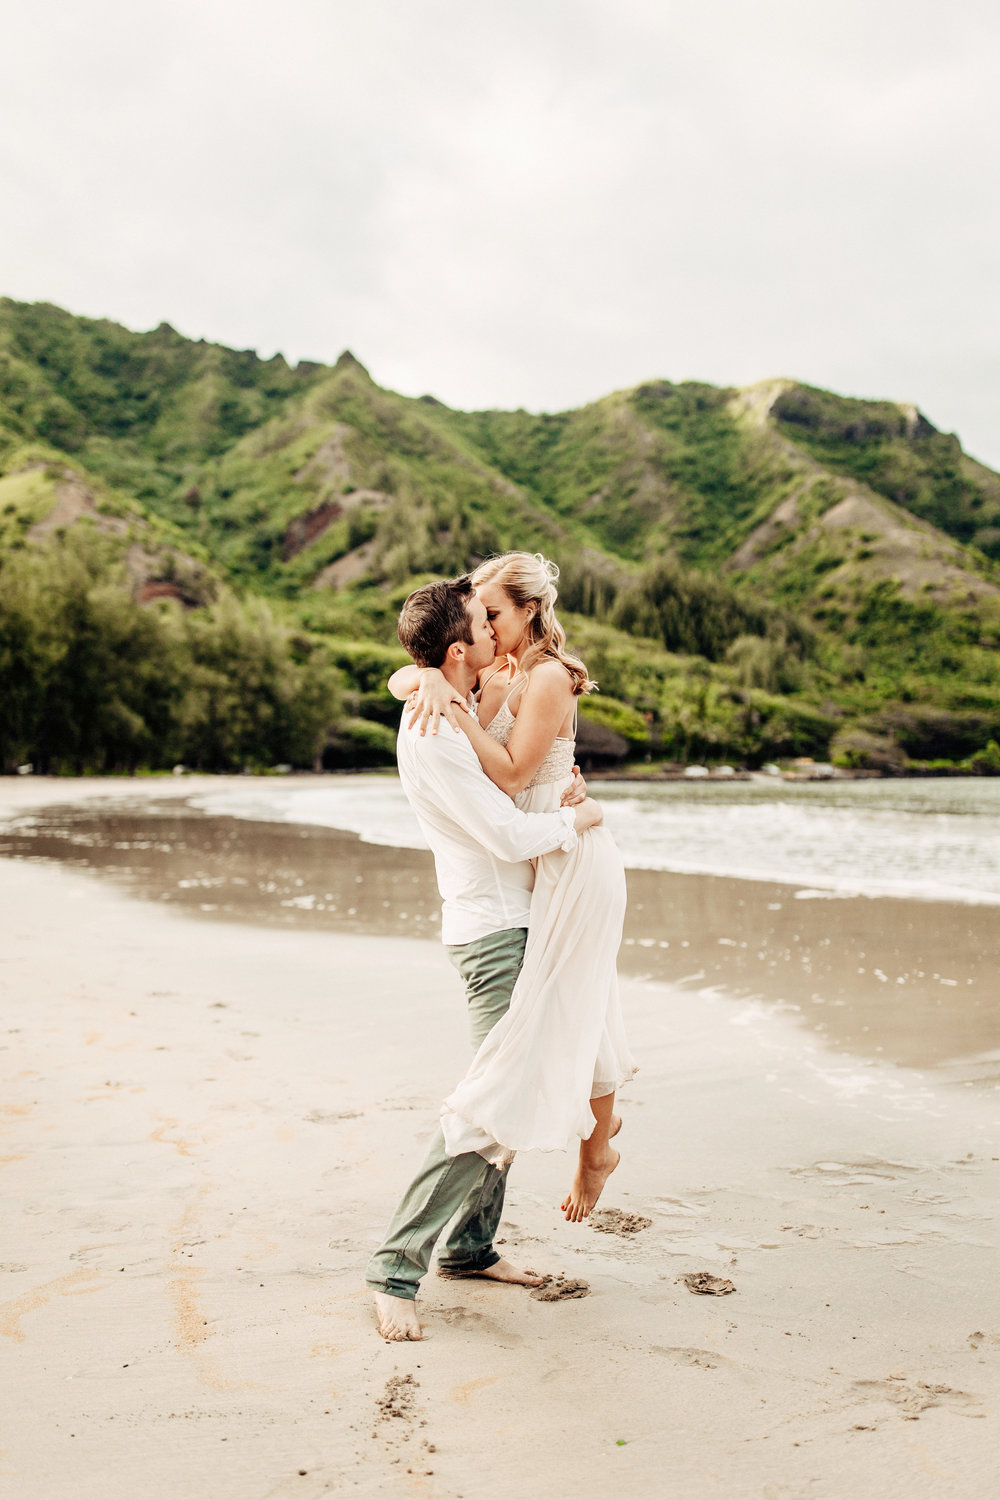 oahu-engagement-session-112-final.JPG